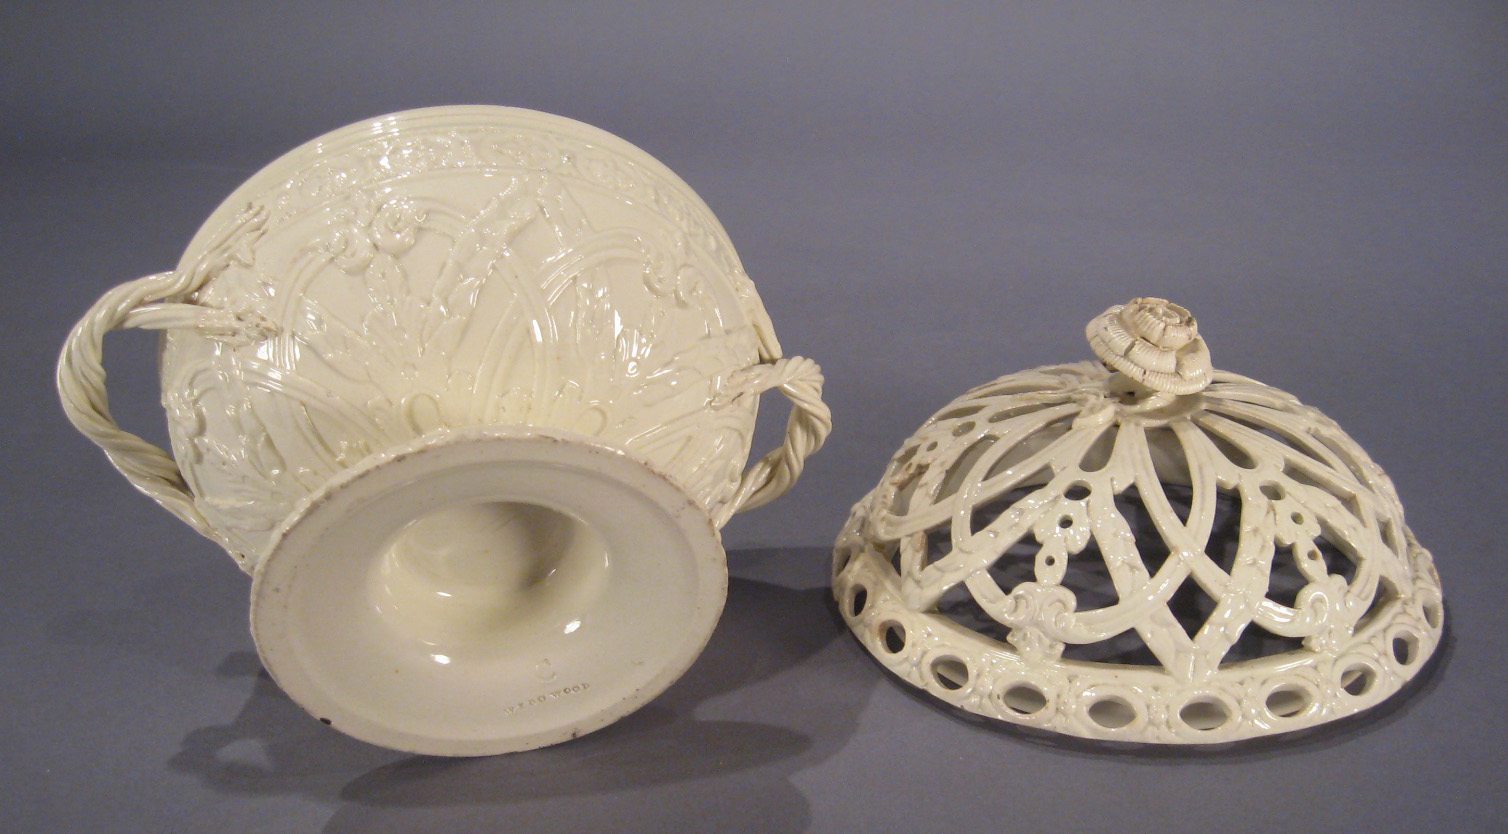 Wedgwood Creamware Reticulated Bowl on European Antiques Furniture